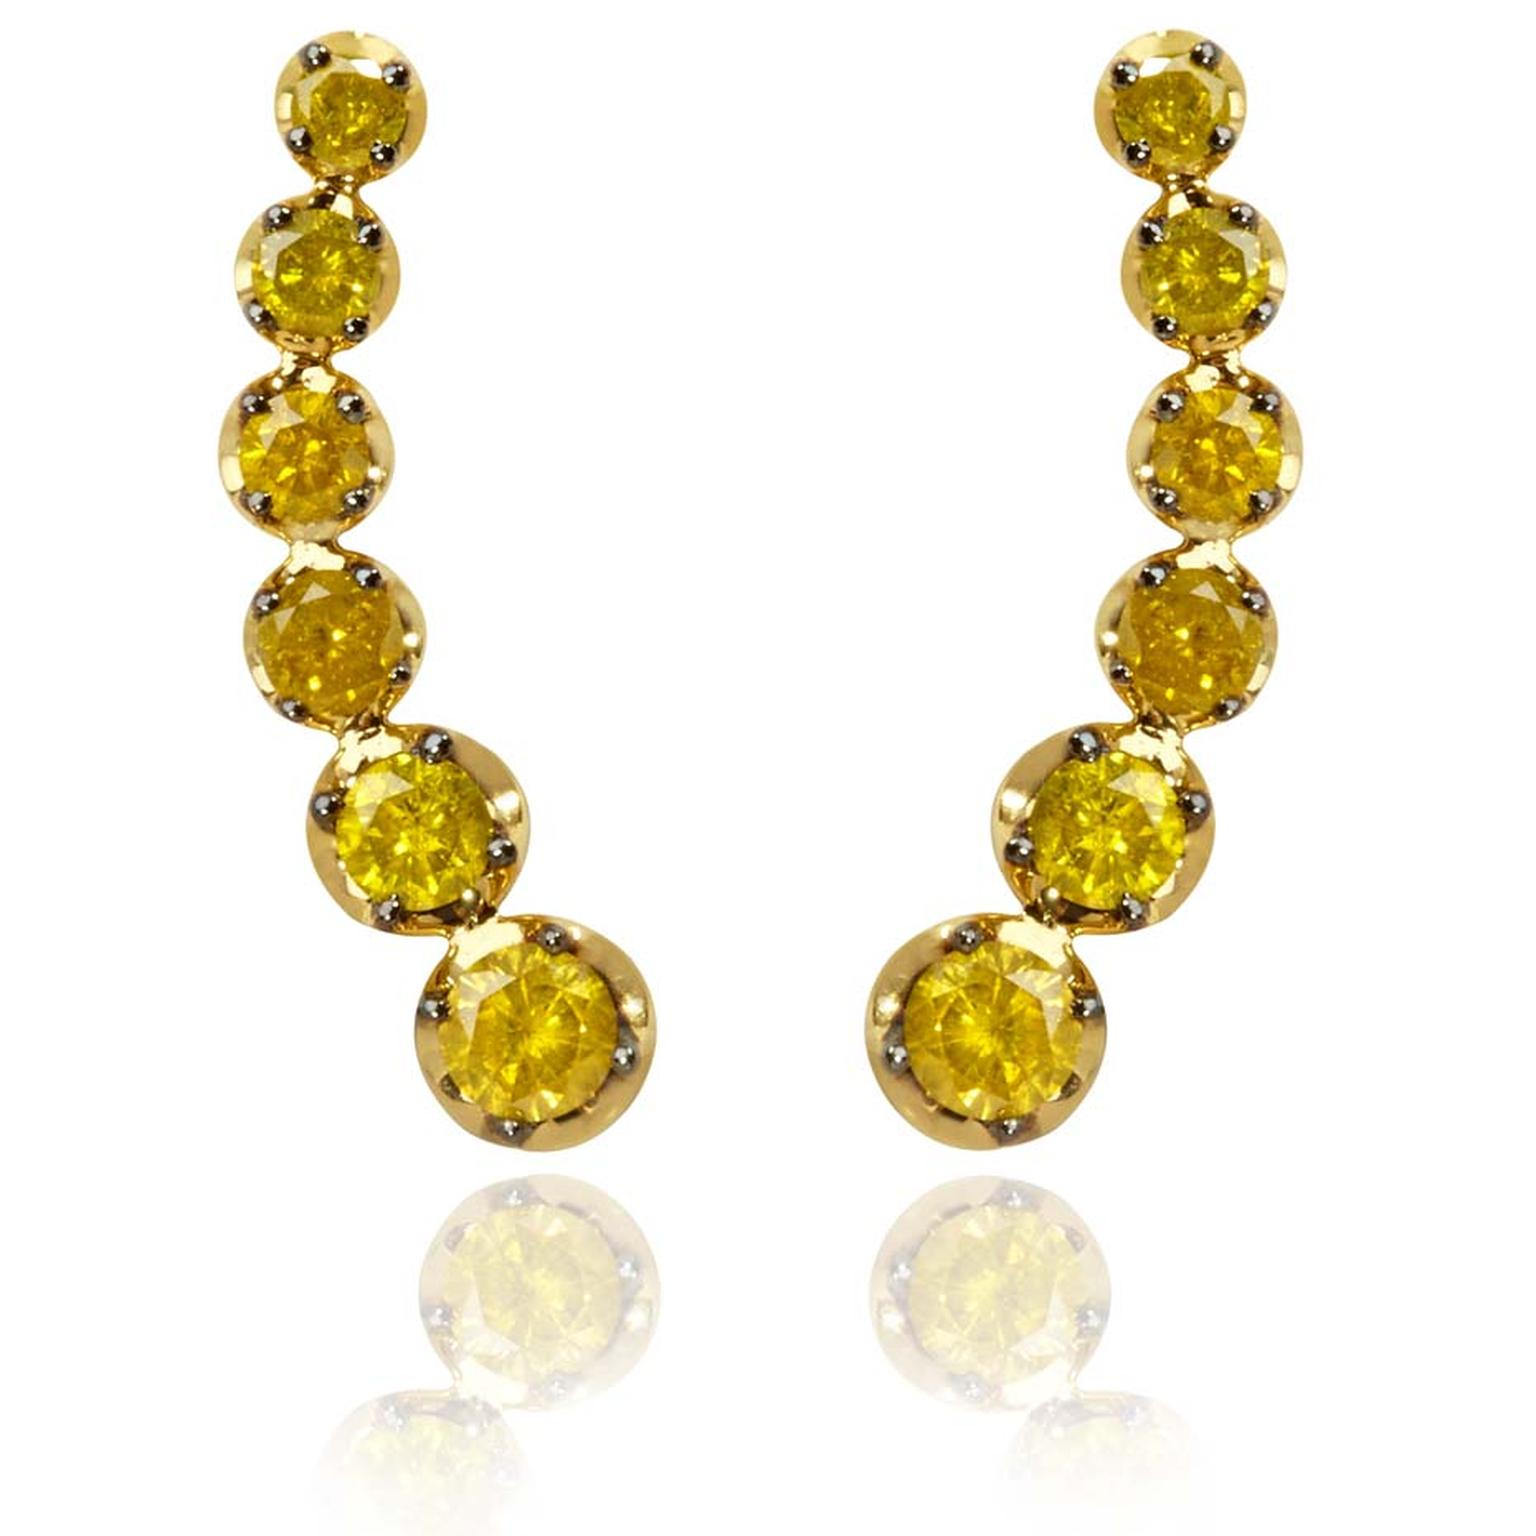 Annoushka Dusty Diamonds ear pins in yellow gold set with six yellow diamonds in descending order can be positioned on the ear in various different ways (£1,590).